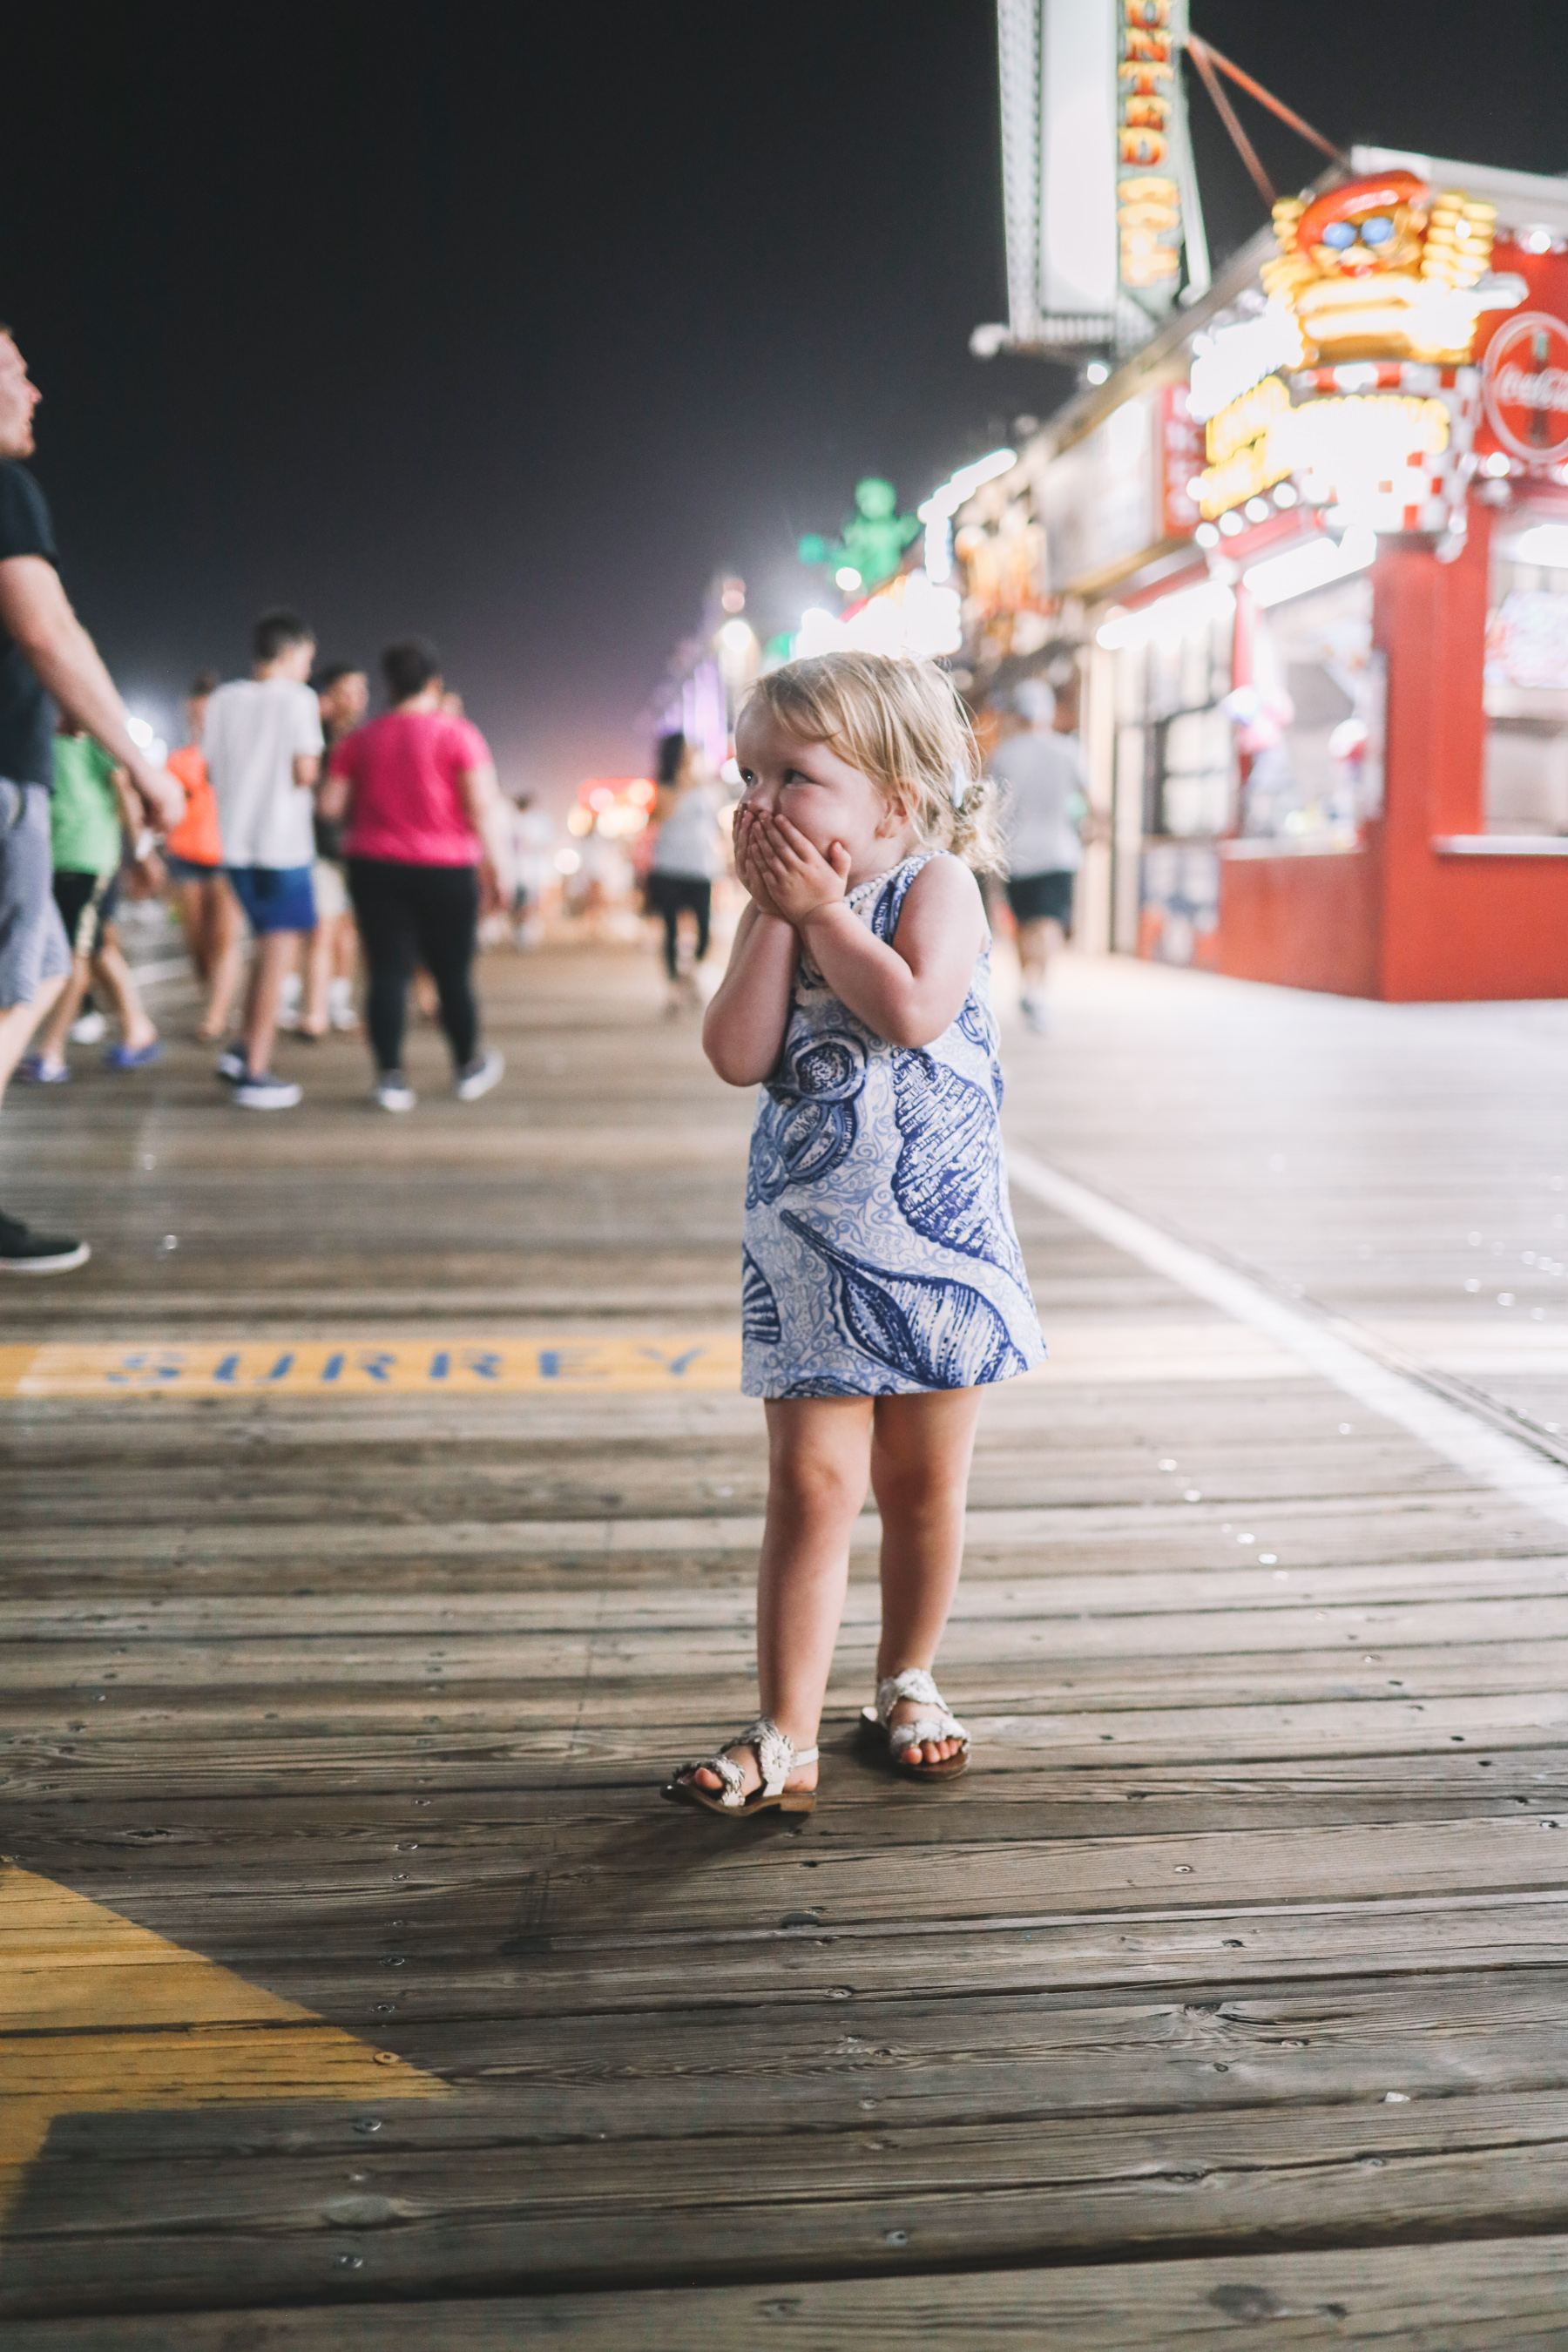 Emma giggles and covers her mouth while walking down the pier